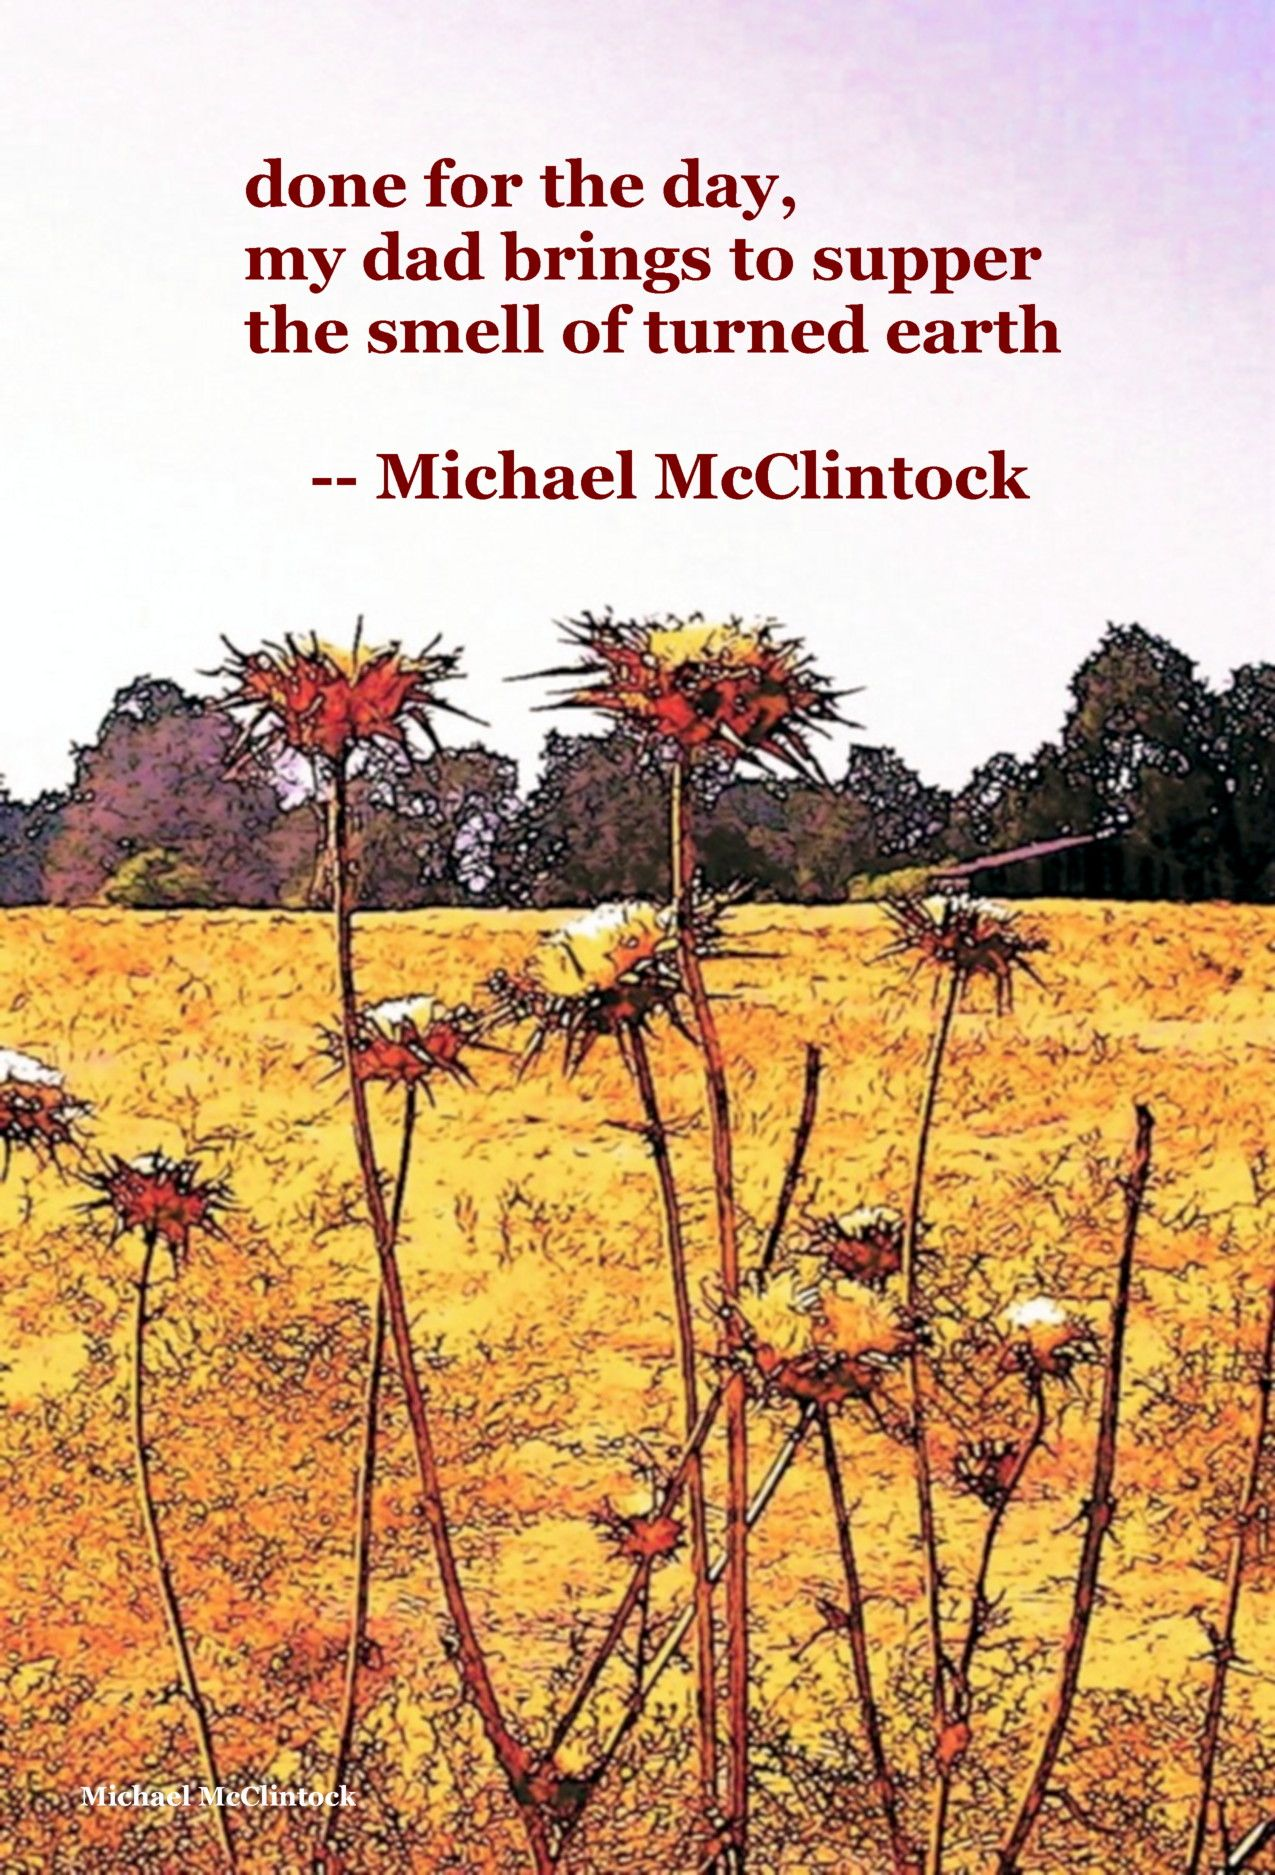 Haiku poem: done for the day,-- by Michael McClintock.